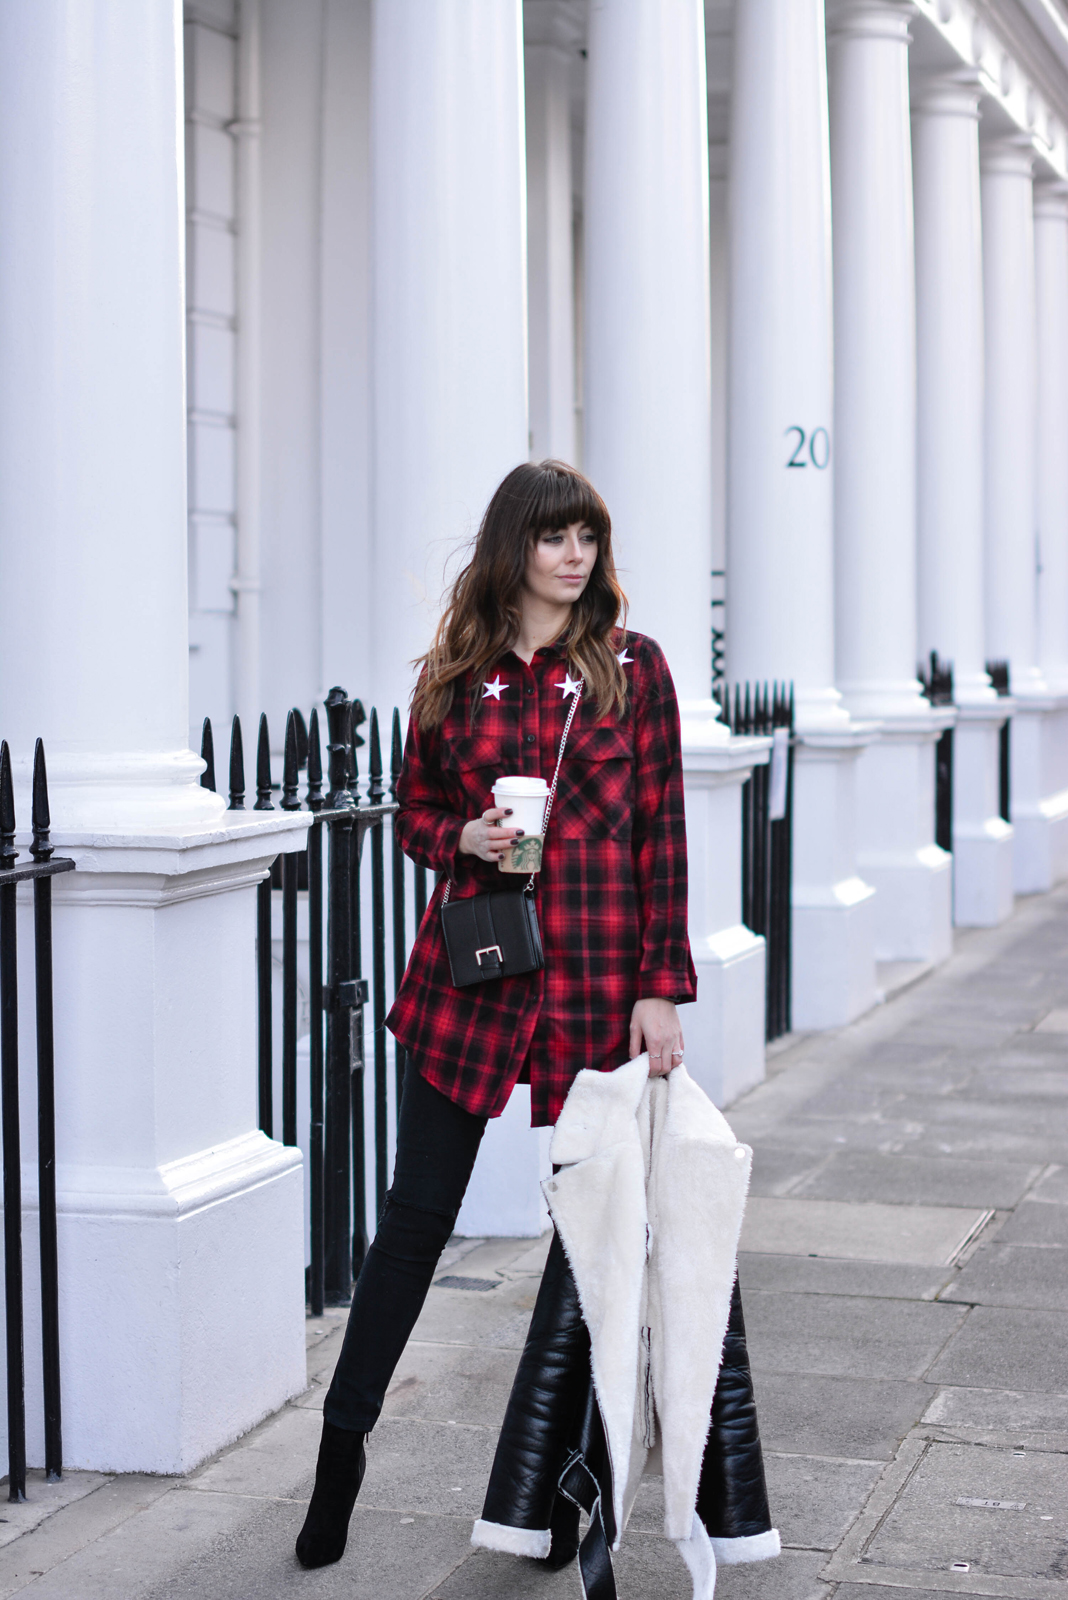 EJSTYLE - Emma Hill, Missguided red check shirt dress, Missguided borg aviator biker jacket, missguided black brossbody bag, missguided black ripped skinny jeans, Missguided stiletto heel ankle boots, OOTD, blogger